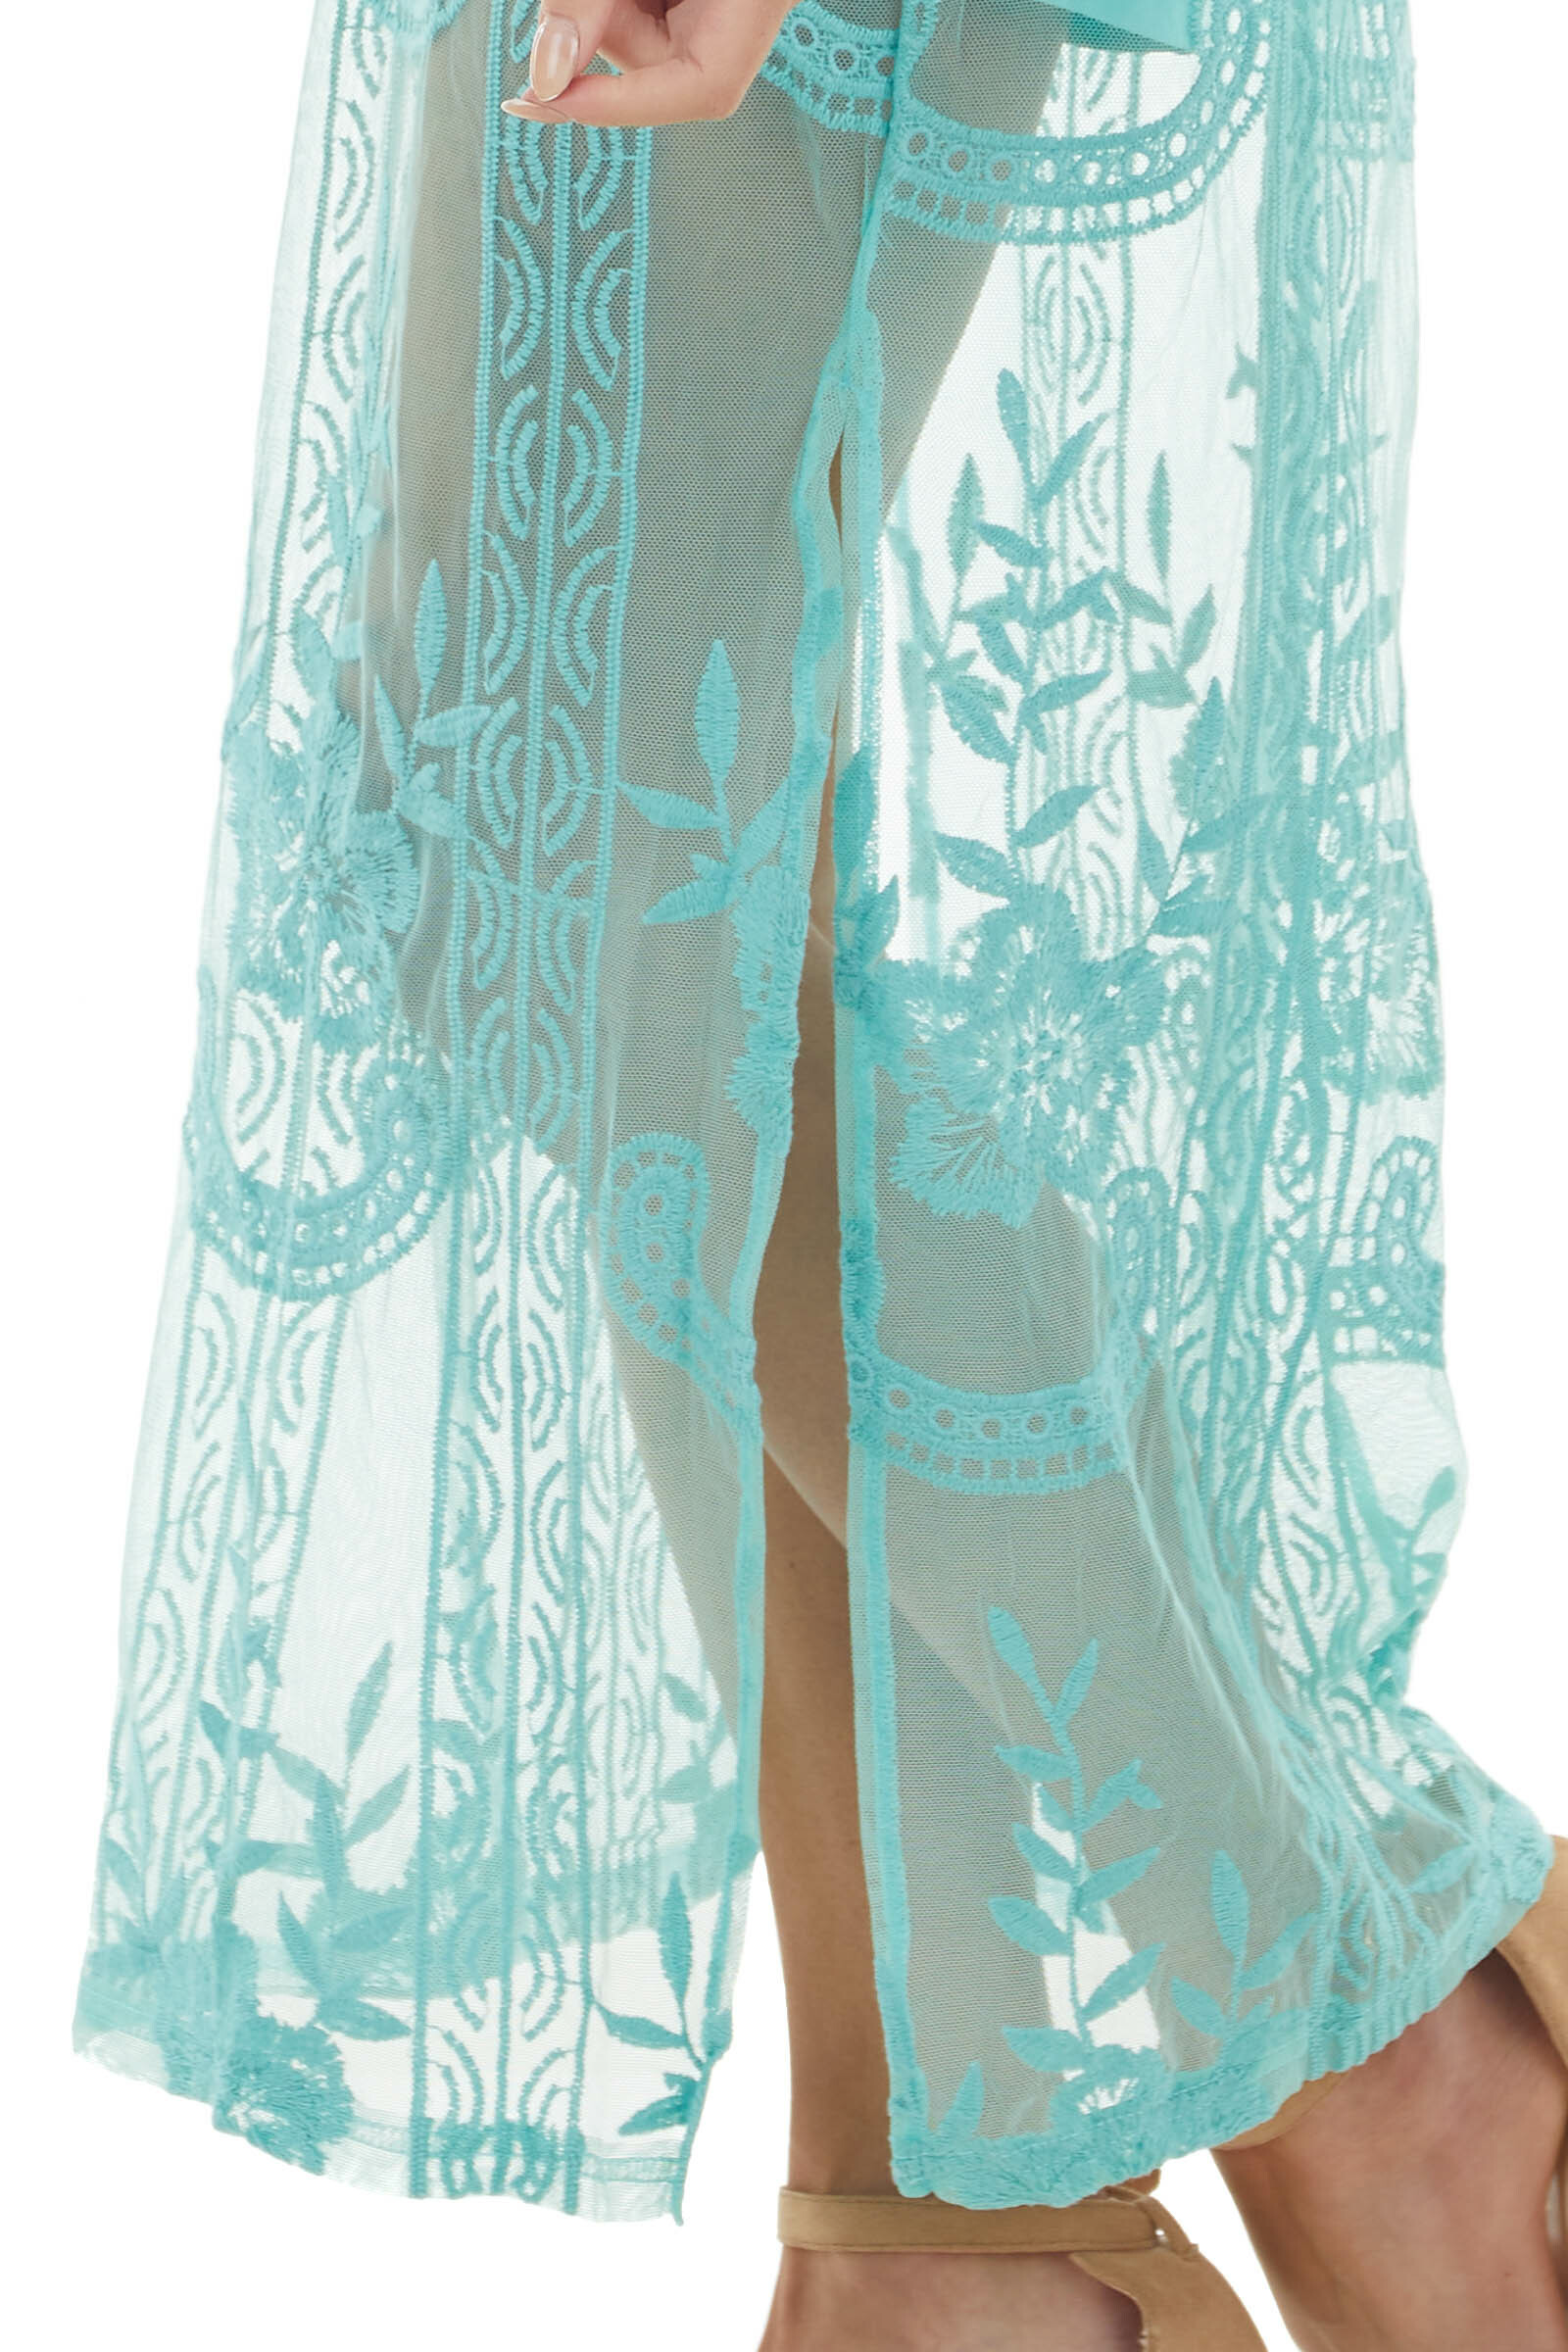 Turquoise Short Sleeve Romper with Floral Lace Maxi Overlay